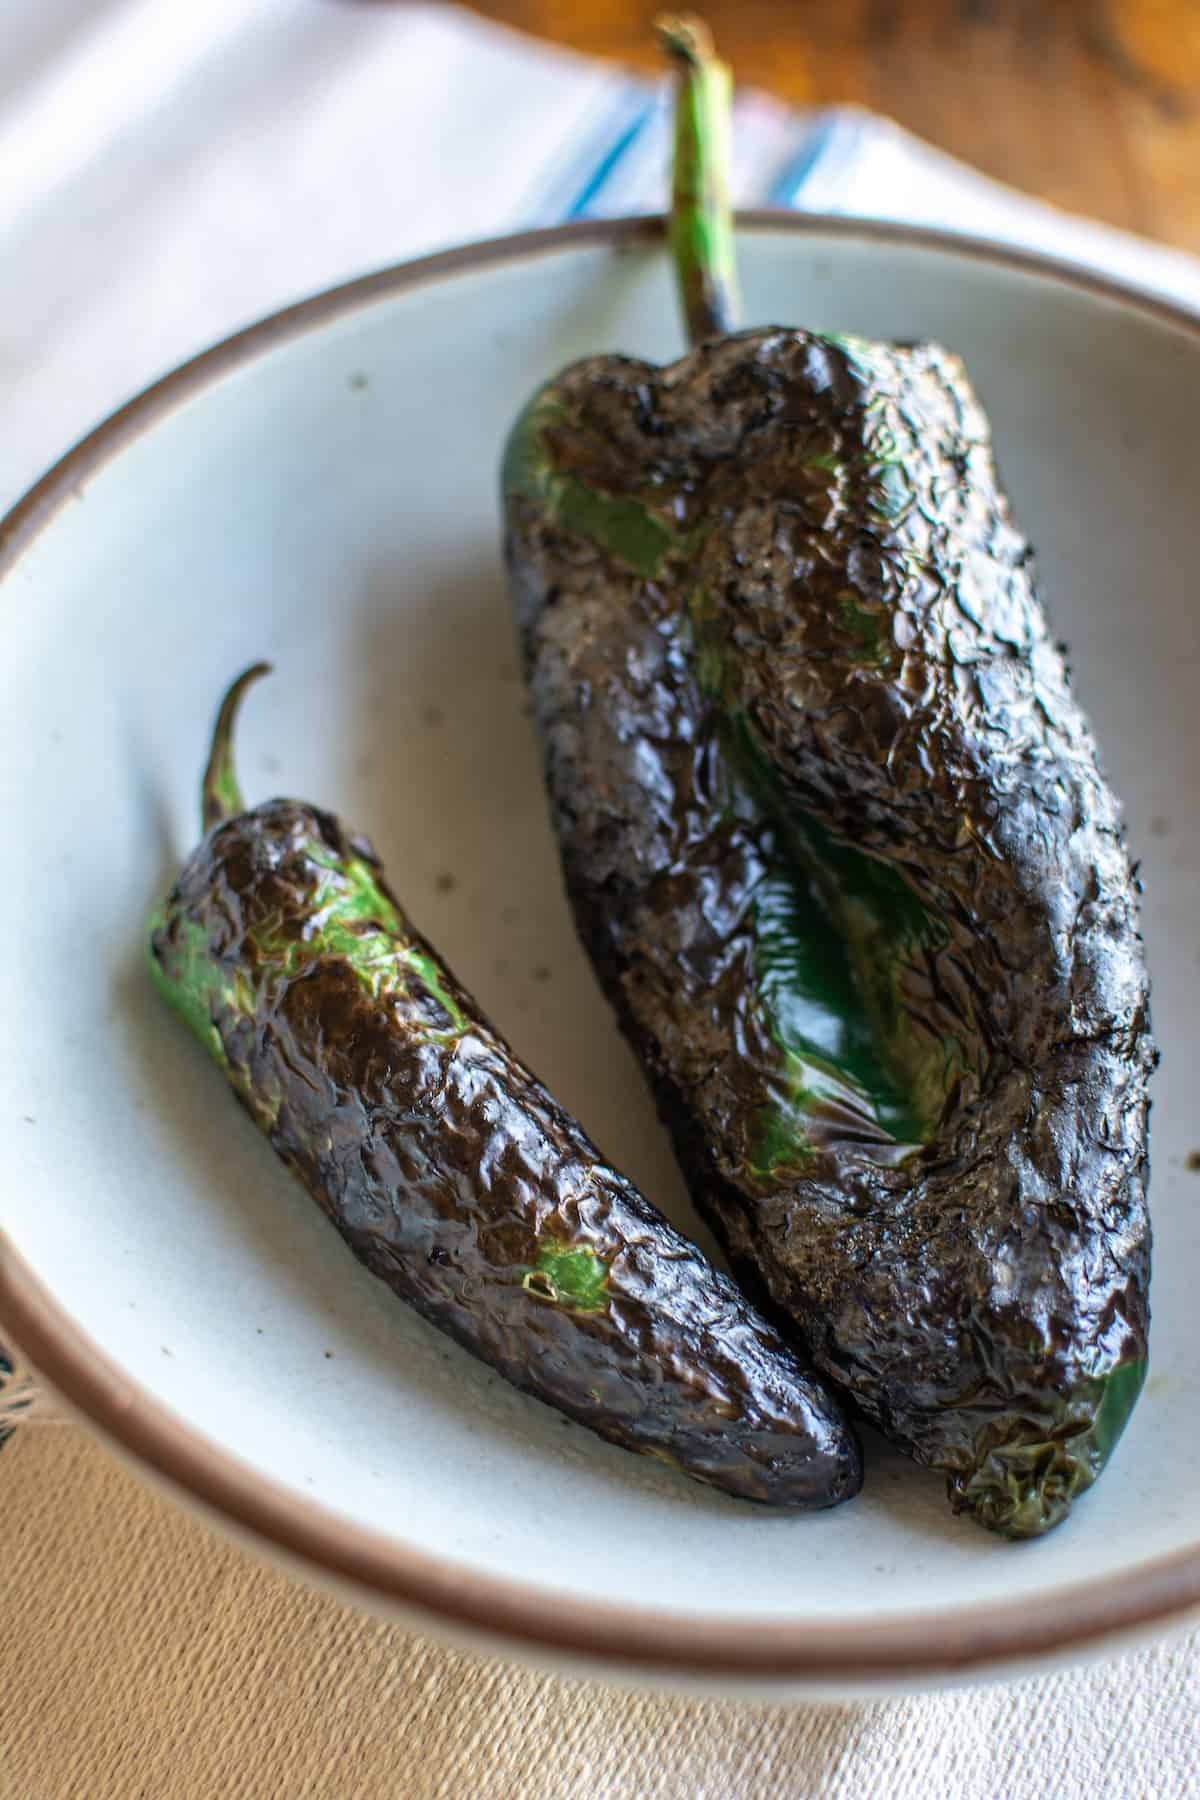 A jalapeño and a poblano pepper that have been charred sitting in a white bowl on a white towel on a wood table.